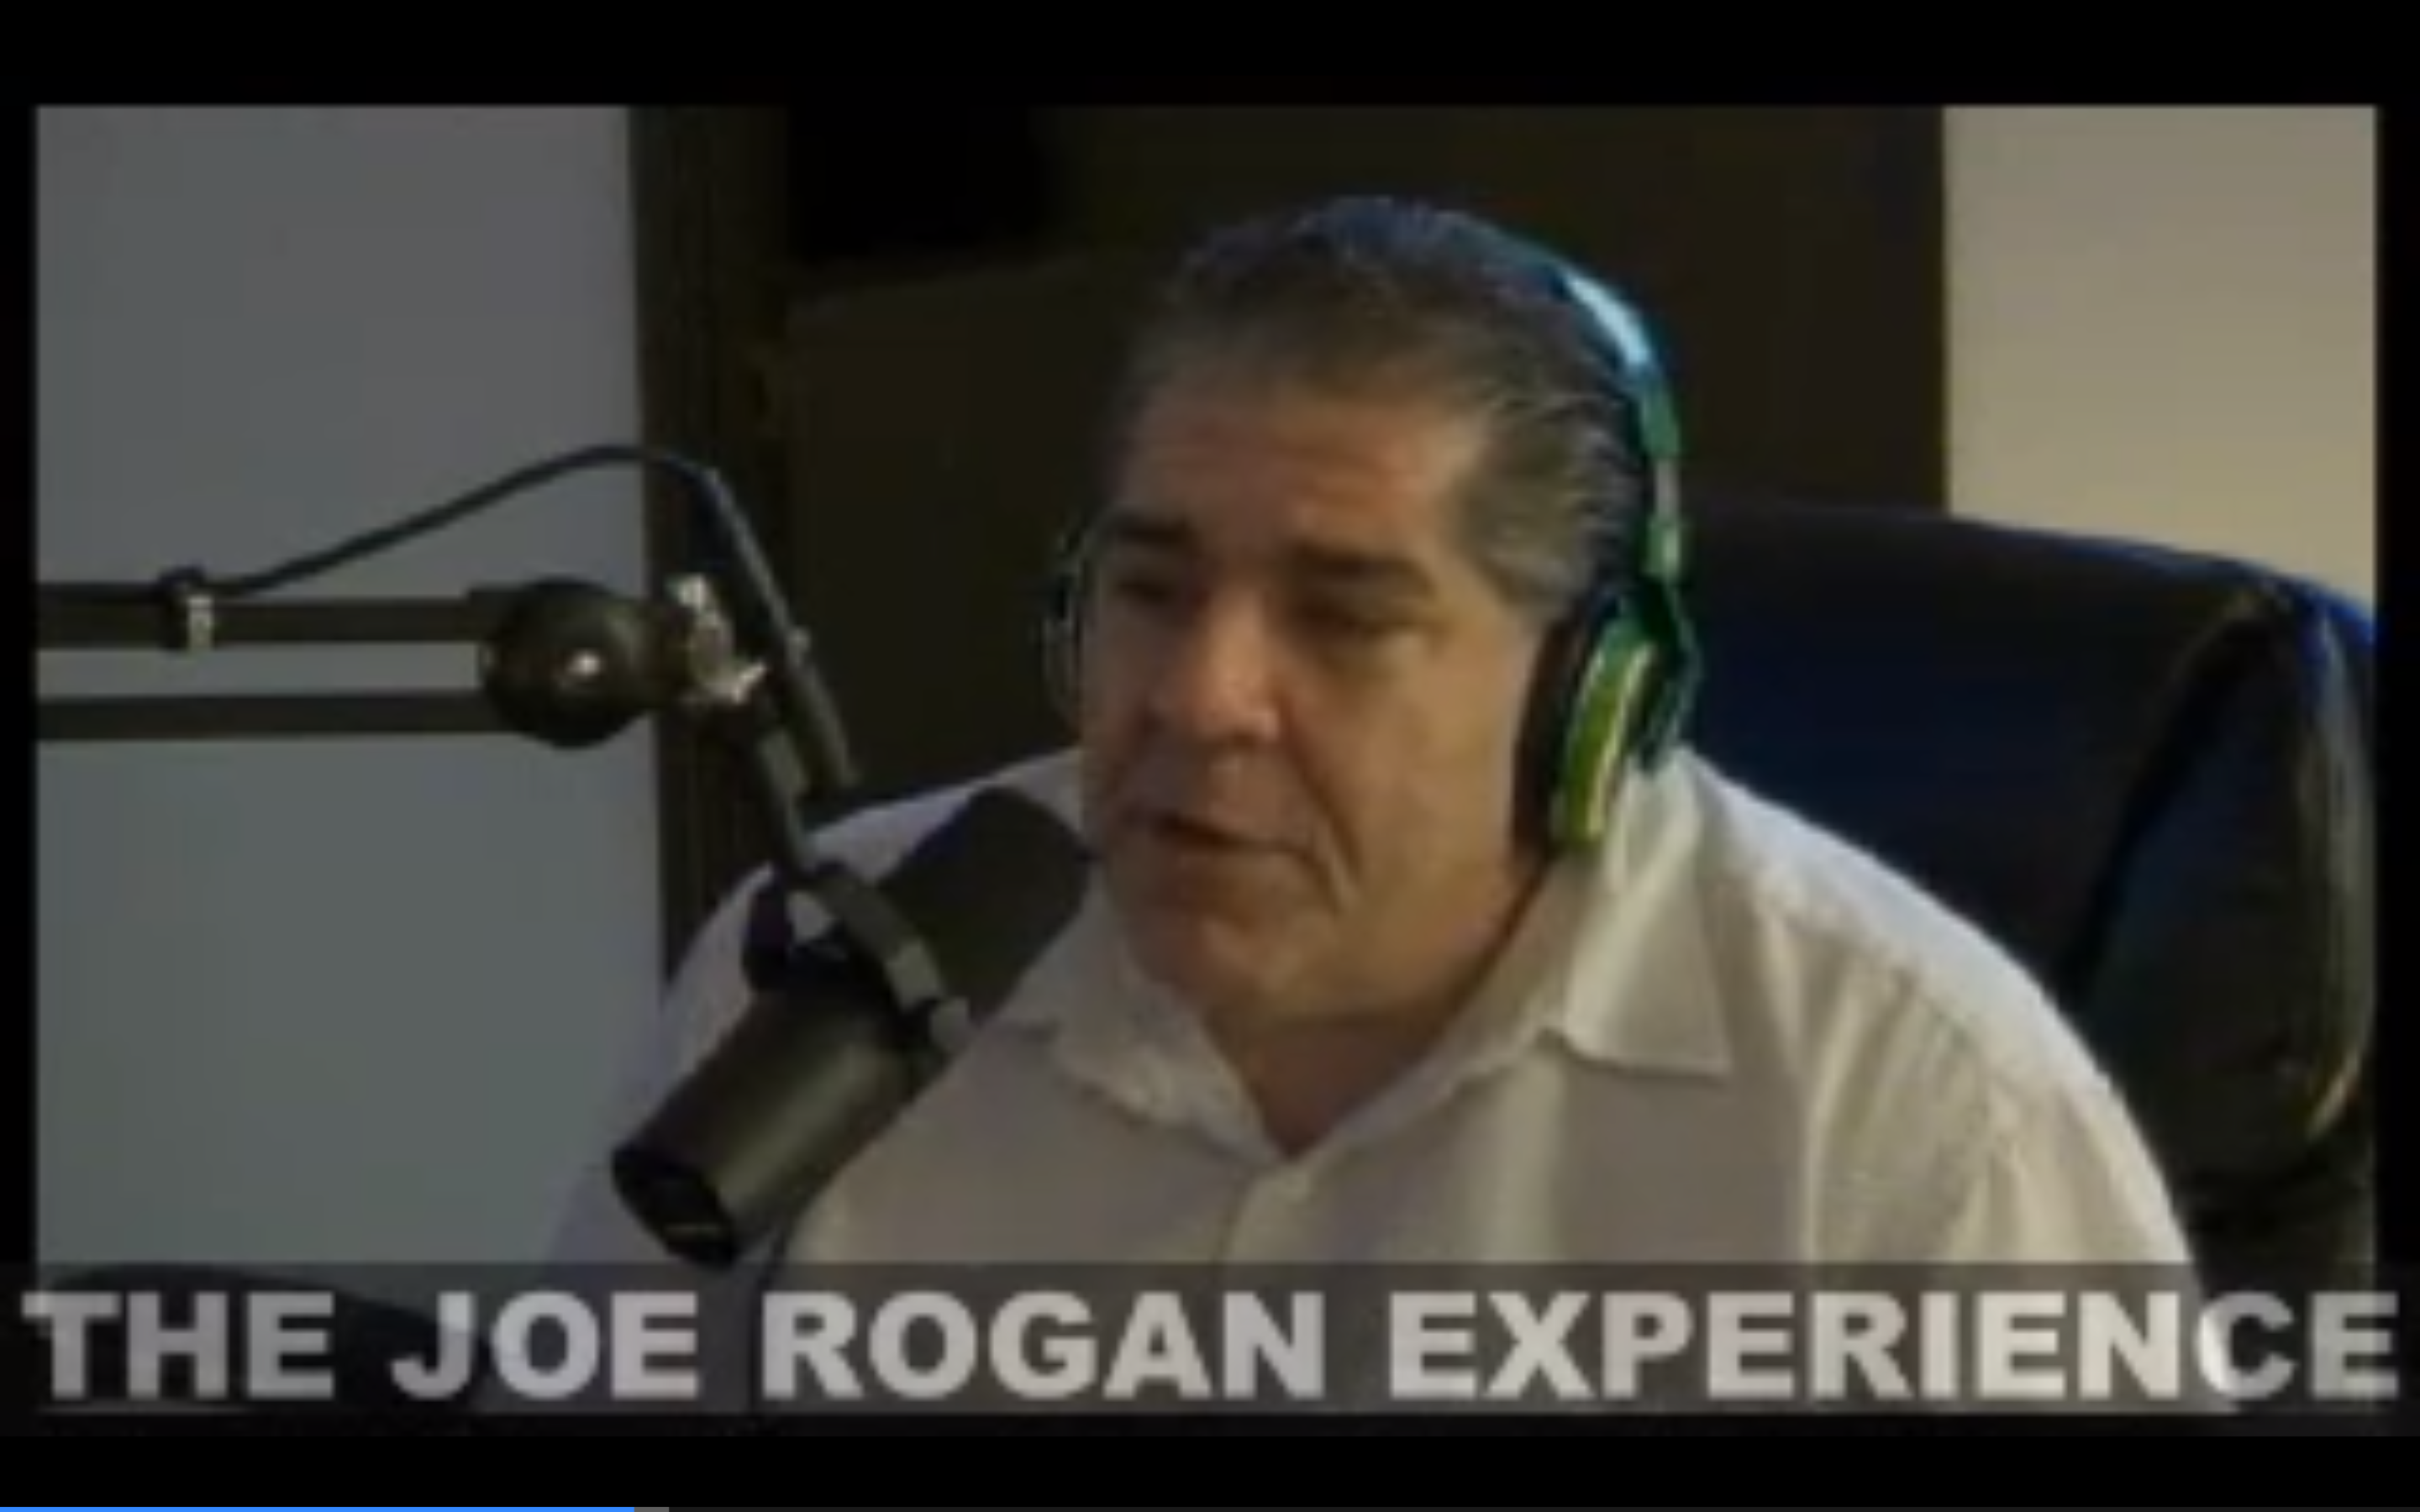 The Joe Rogan Experience #300 - Joey Diaz, Brian Redban